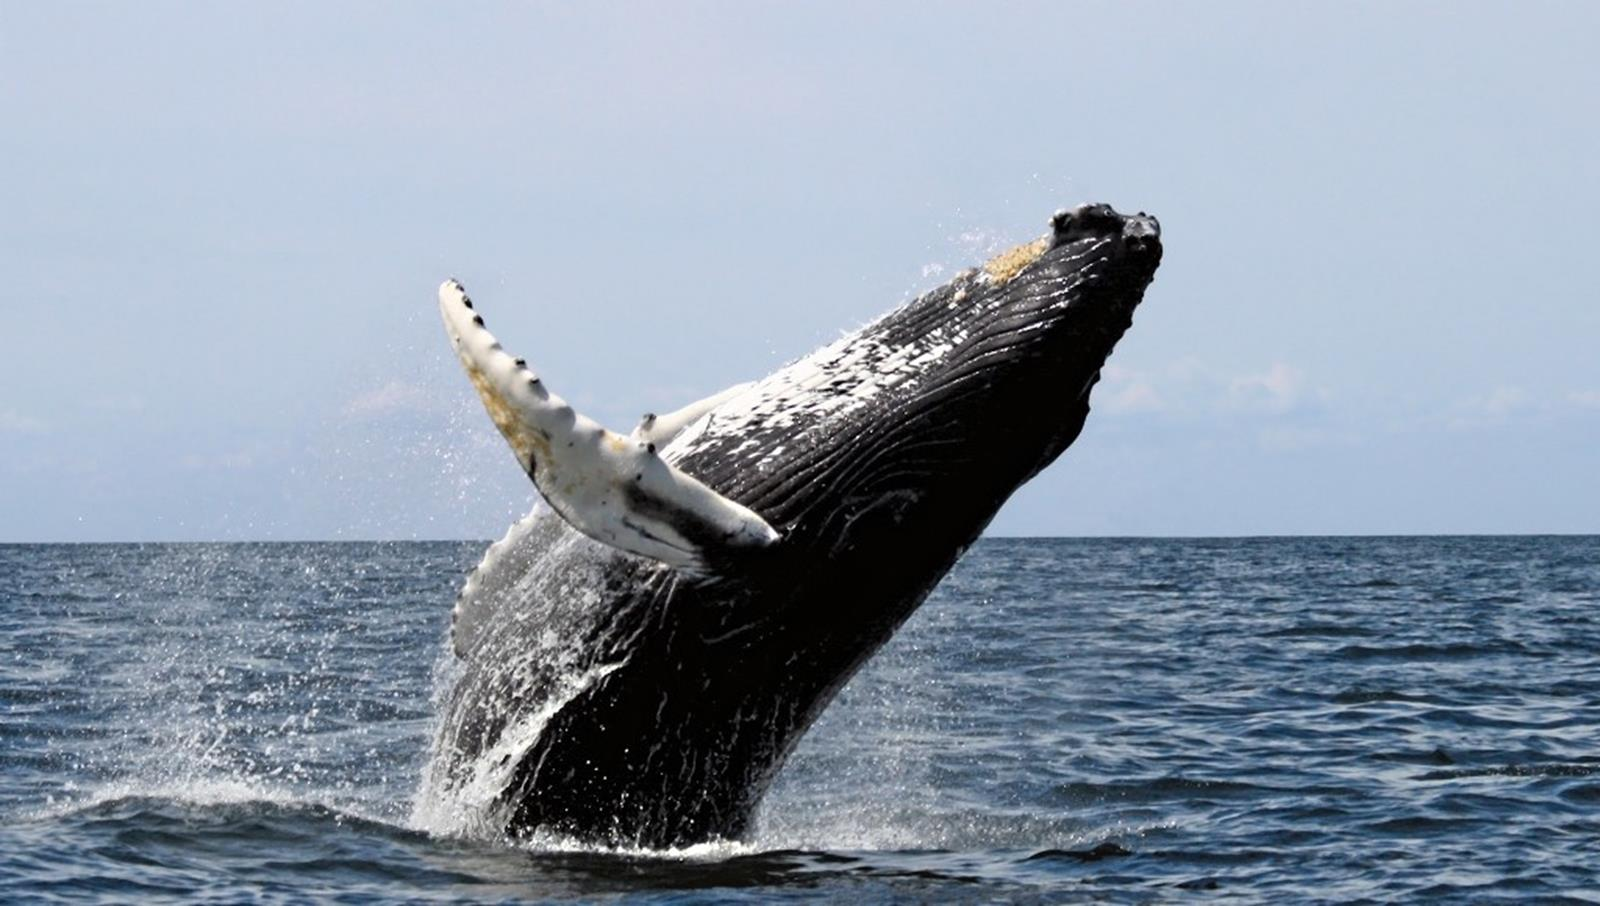 Humpback whale leaping out of the ocean waters in Stellwagen Bank National Marine Sanctuary. Credit: Whit Welles at en.wikipedia